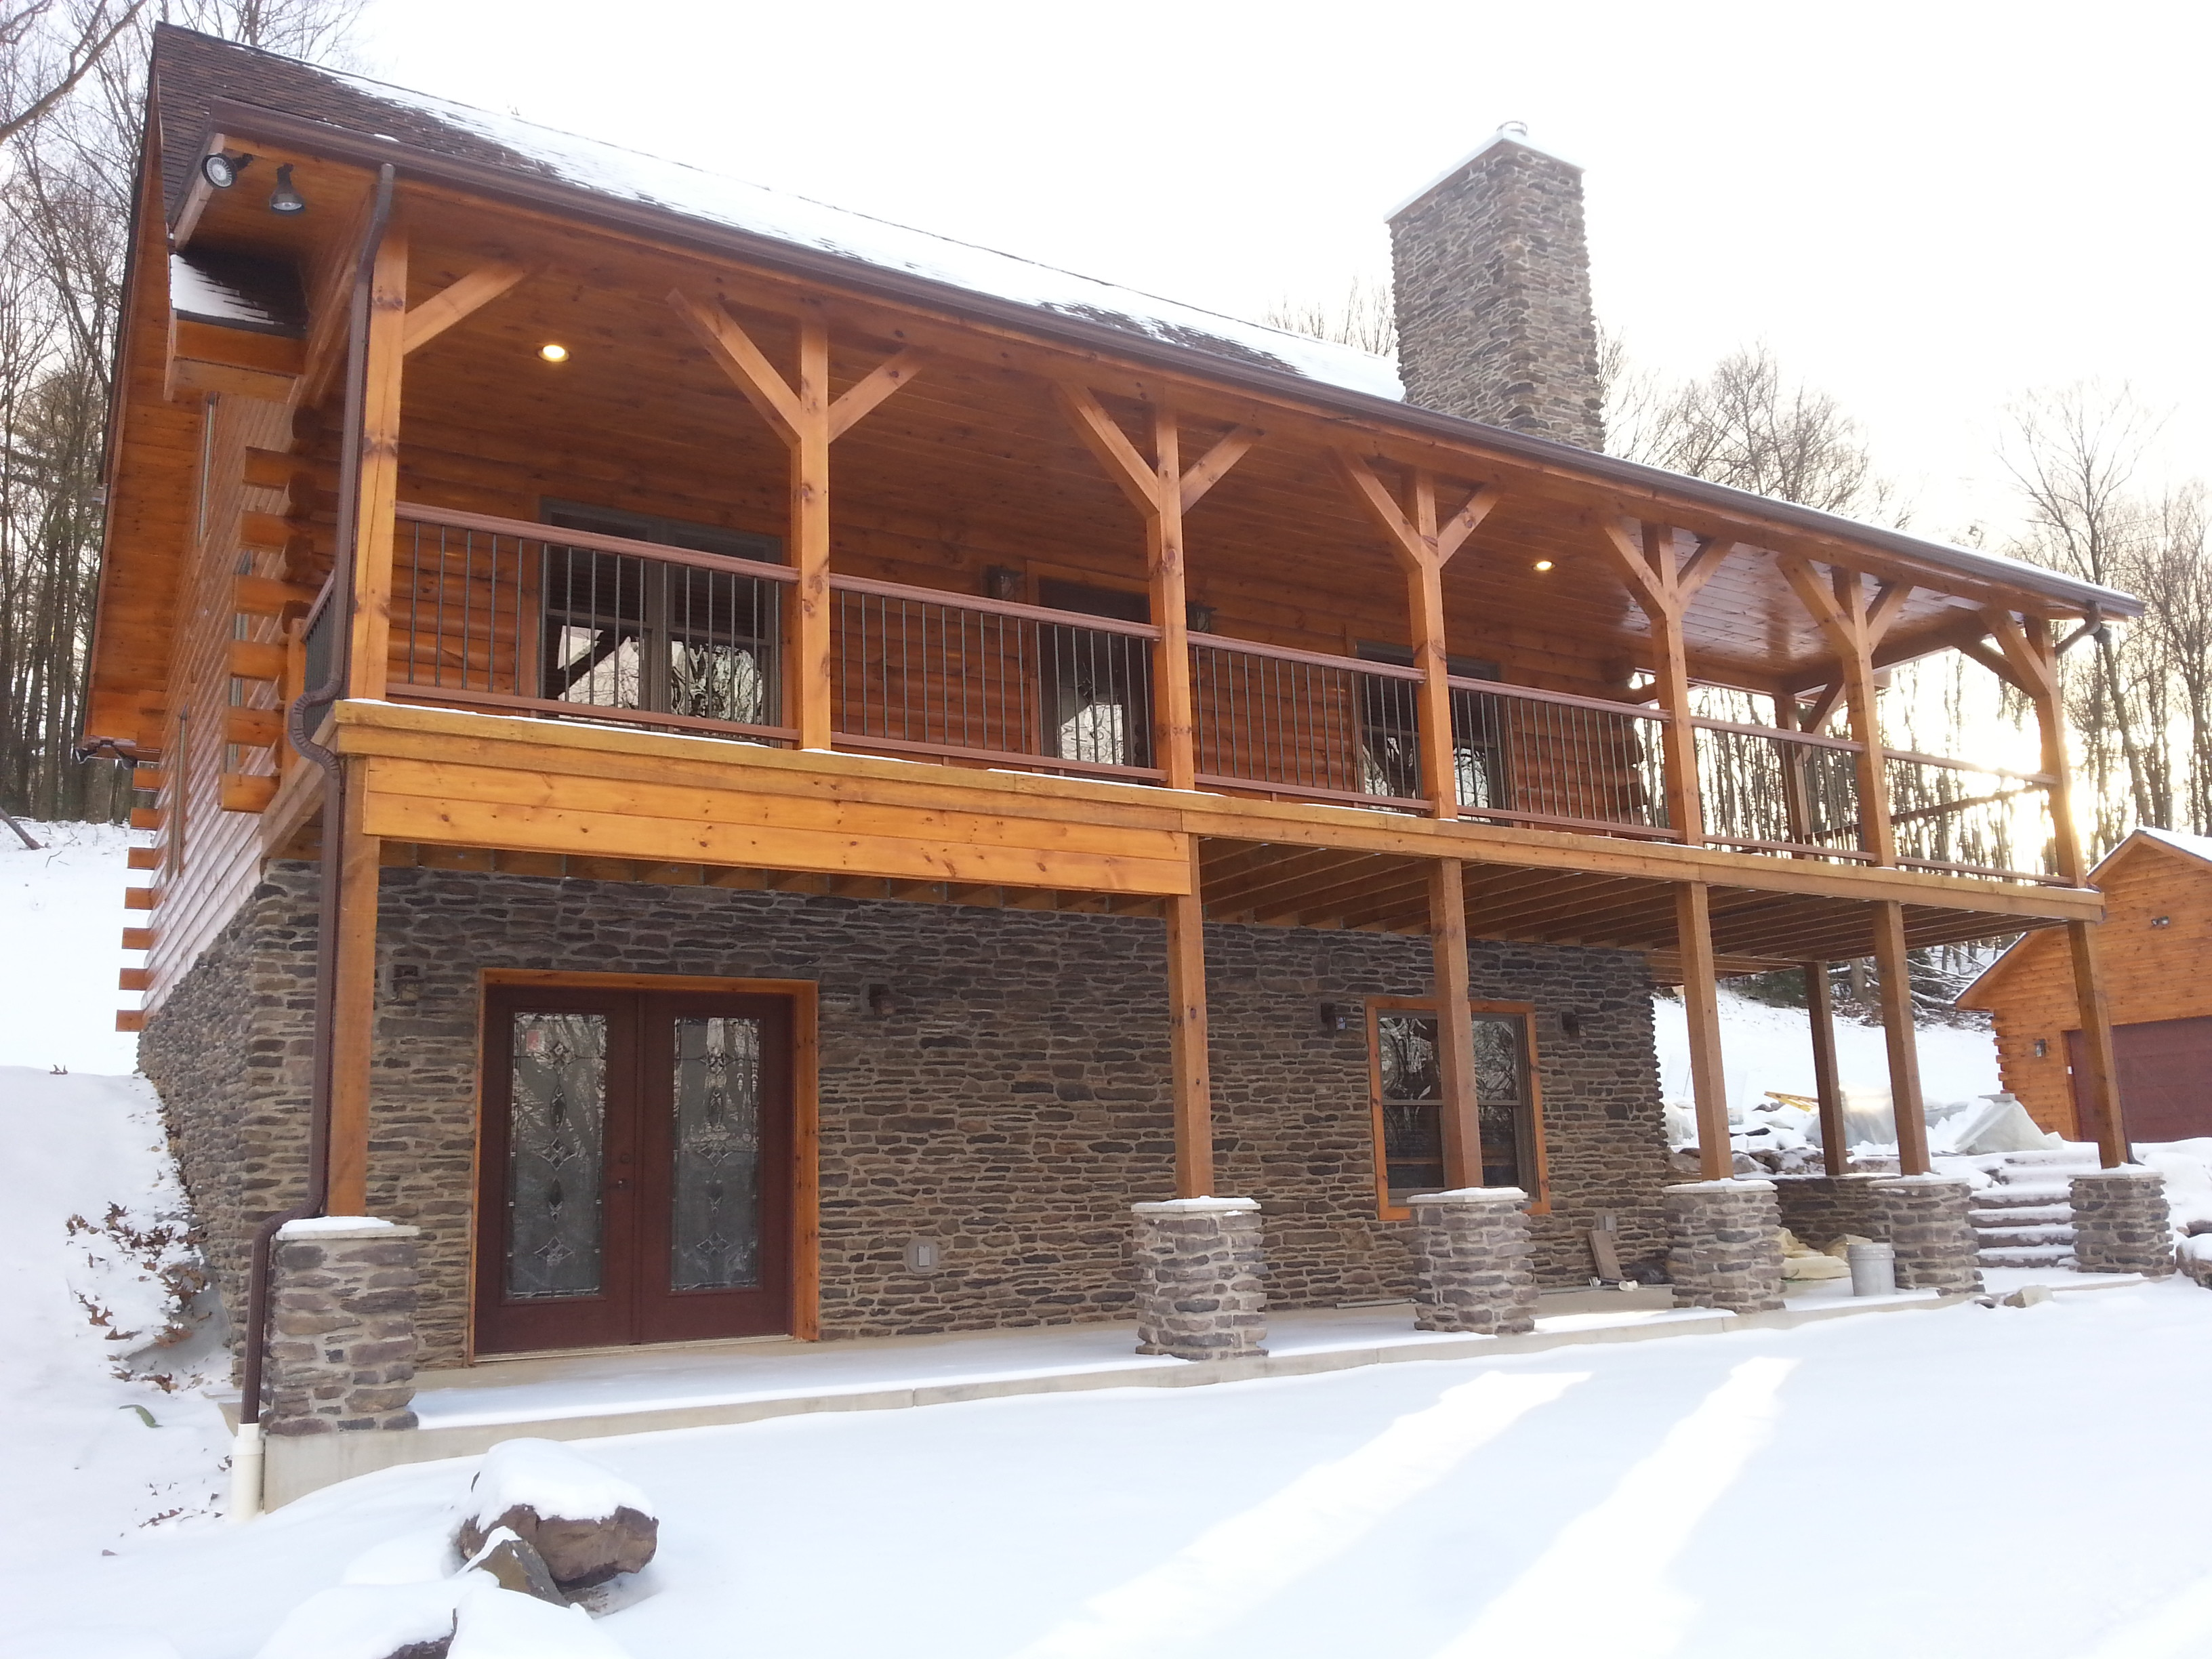 Complete customization good things in small packages for Log cabin with basement